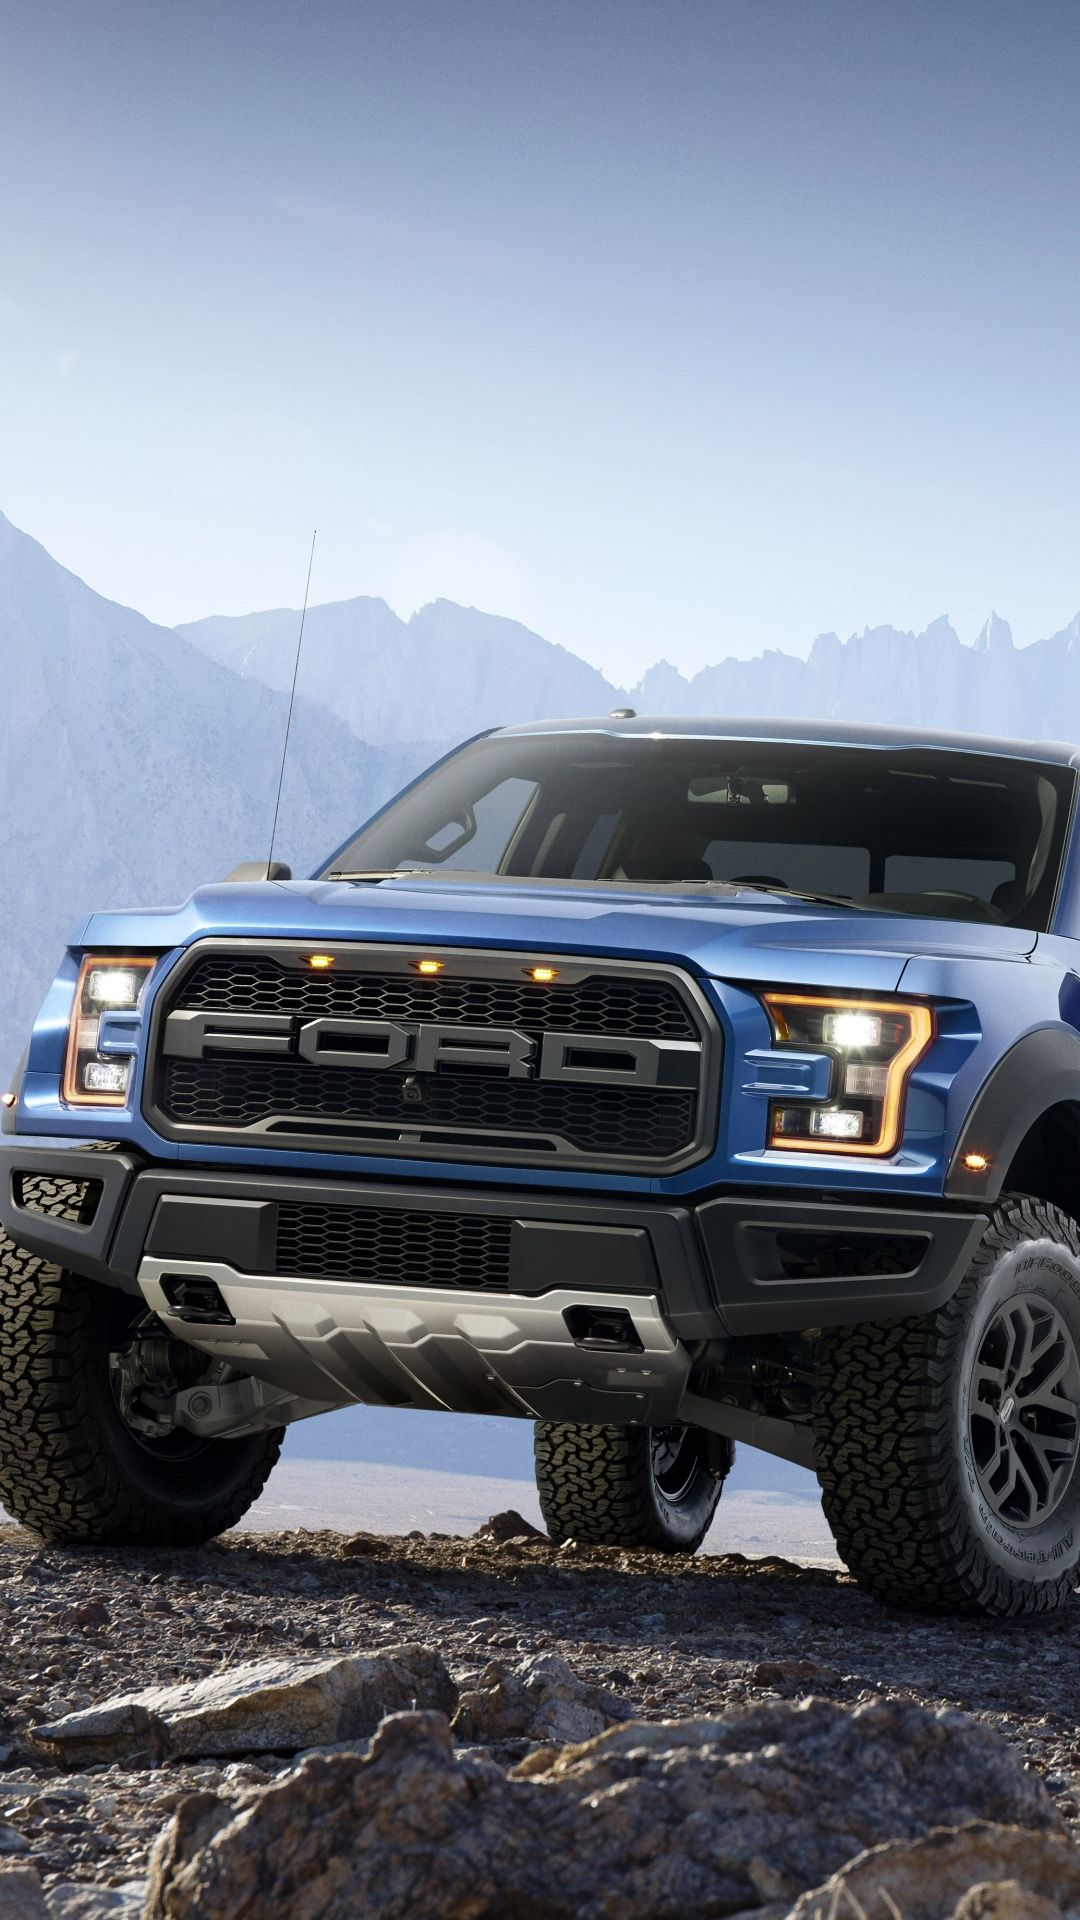 Iphone 5 Vehicles Ford Raptor Wallpaper Id 595733 Raptor